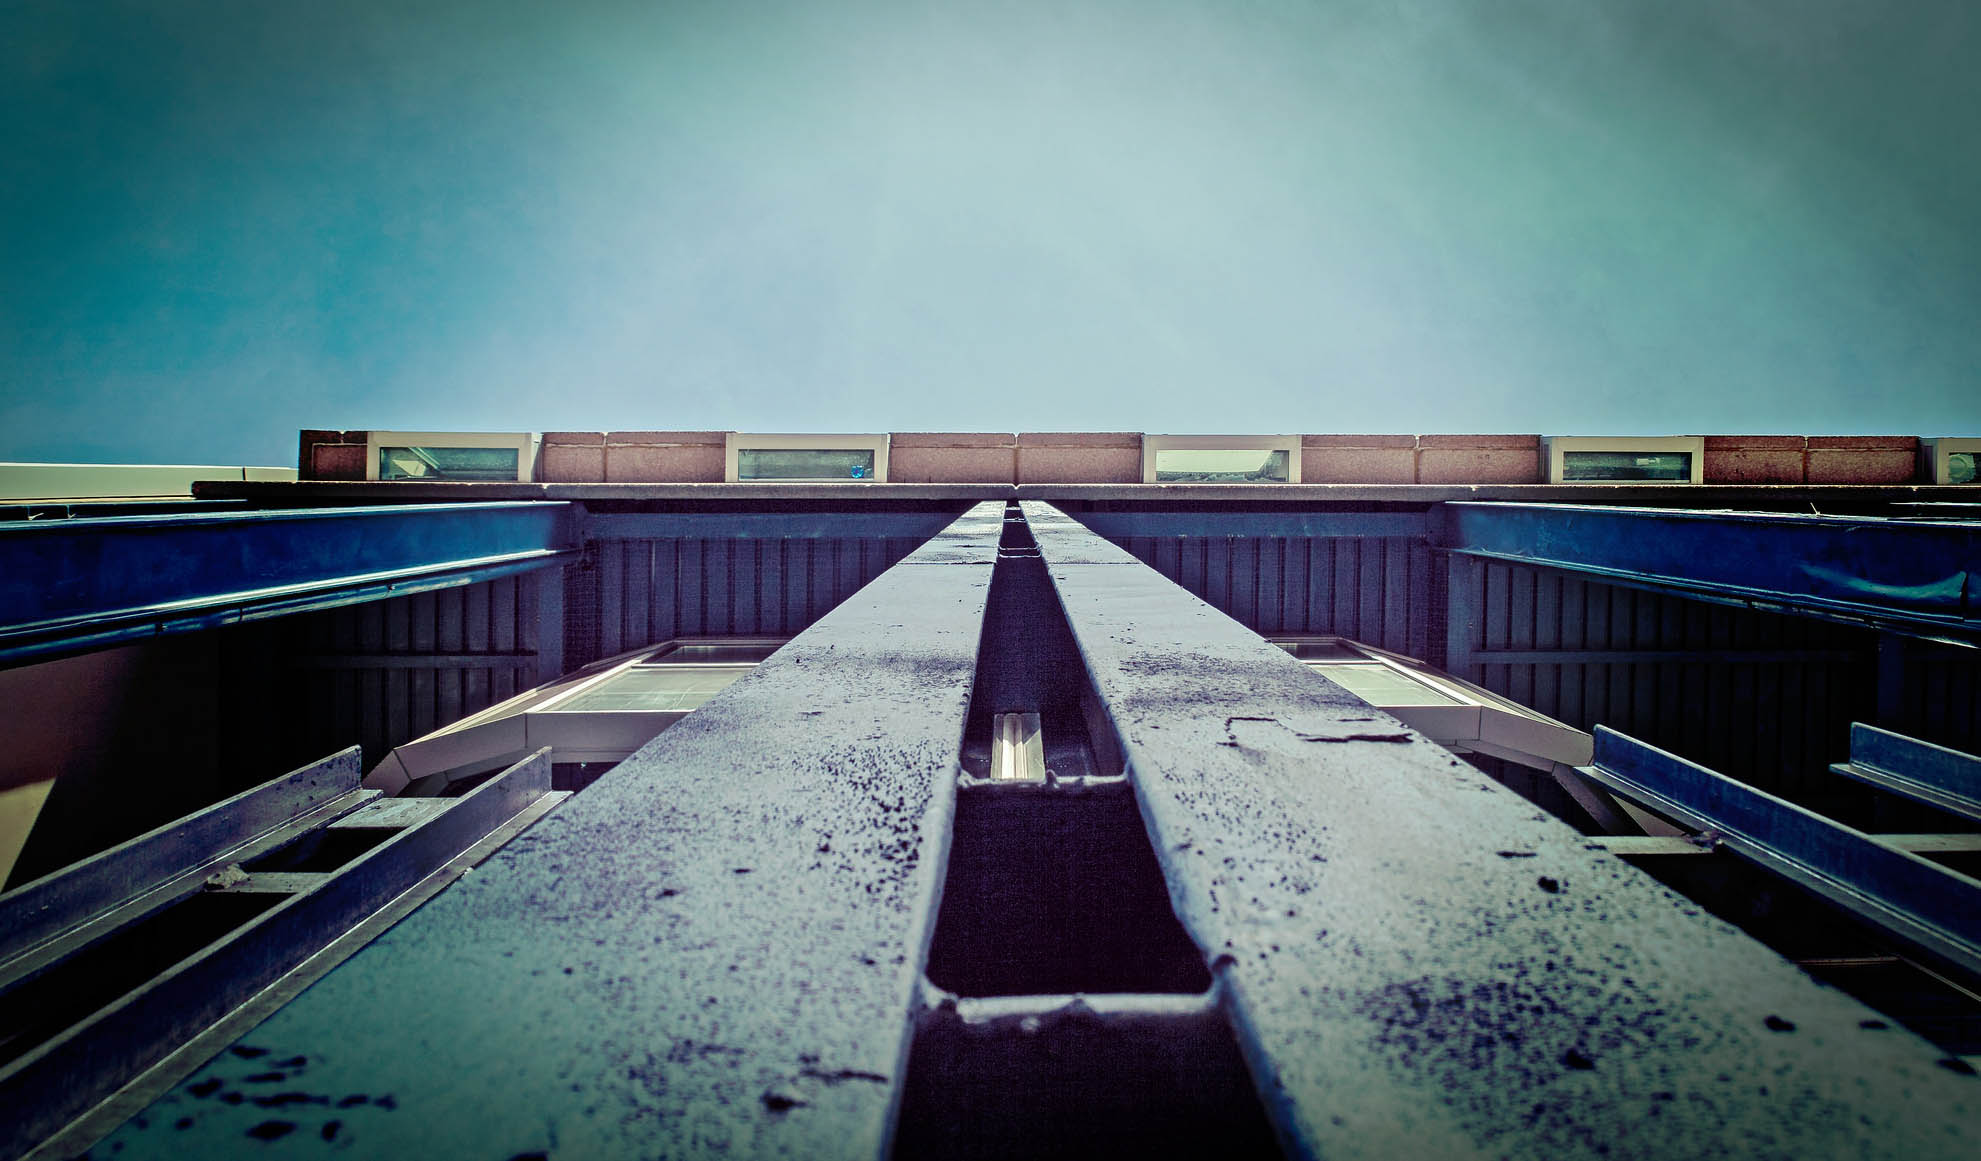 modern architecture photography by gianni